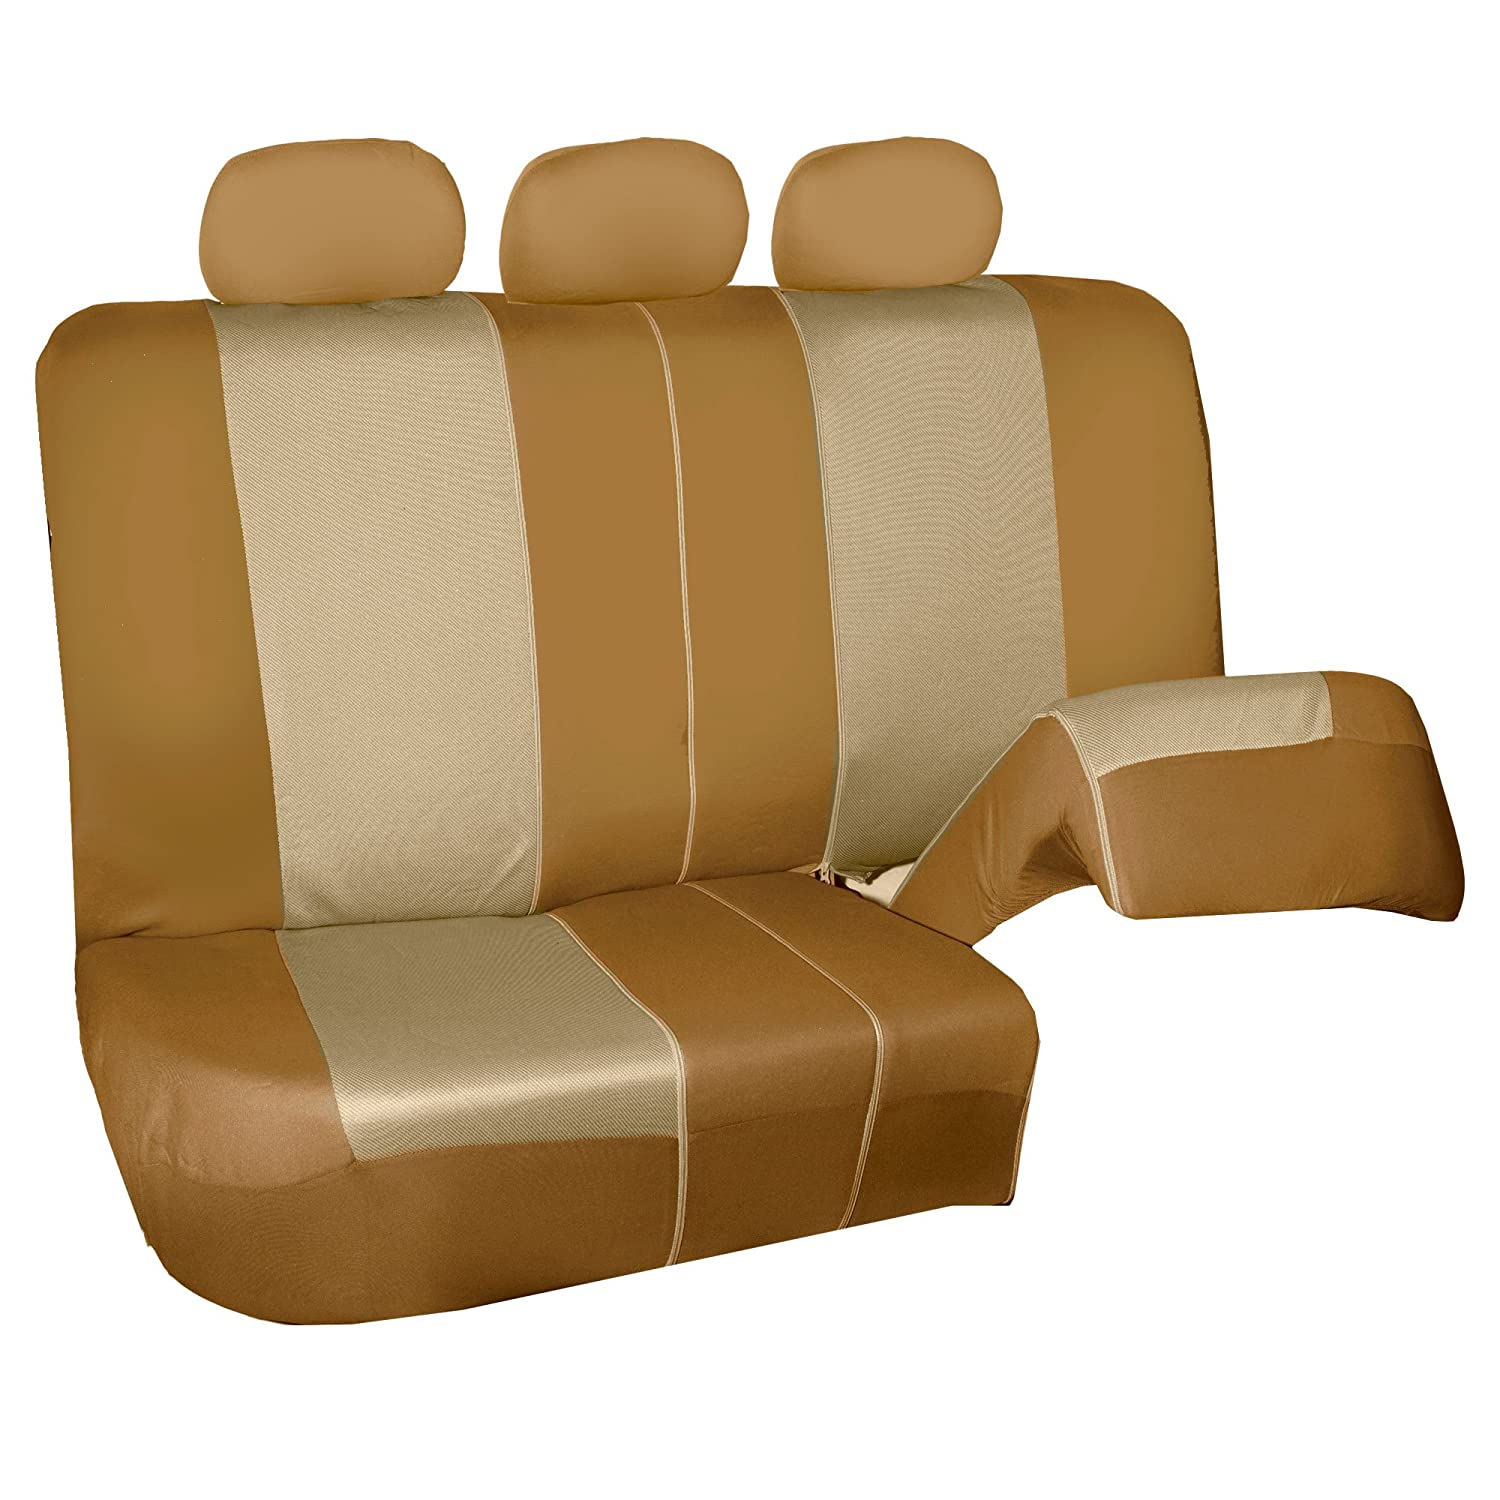 FH Group FB126102 Two Tone Leopard Car Seat Covers Truck or Van Airbag compatible Suv Leopard- Fit Most Car